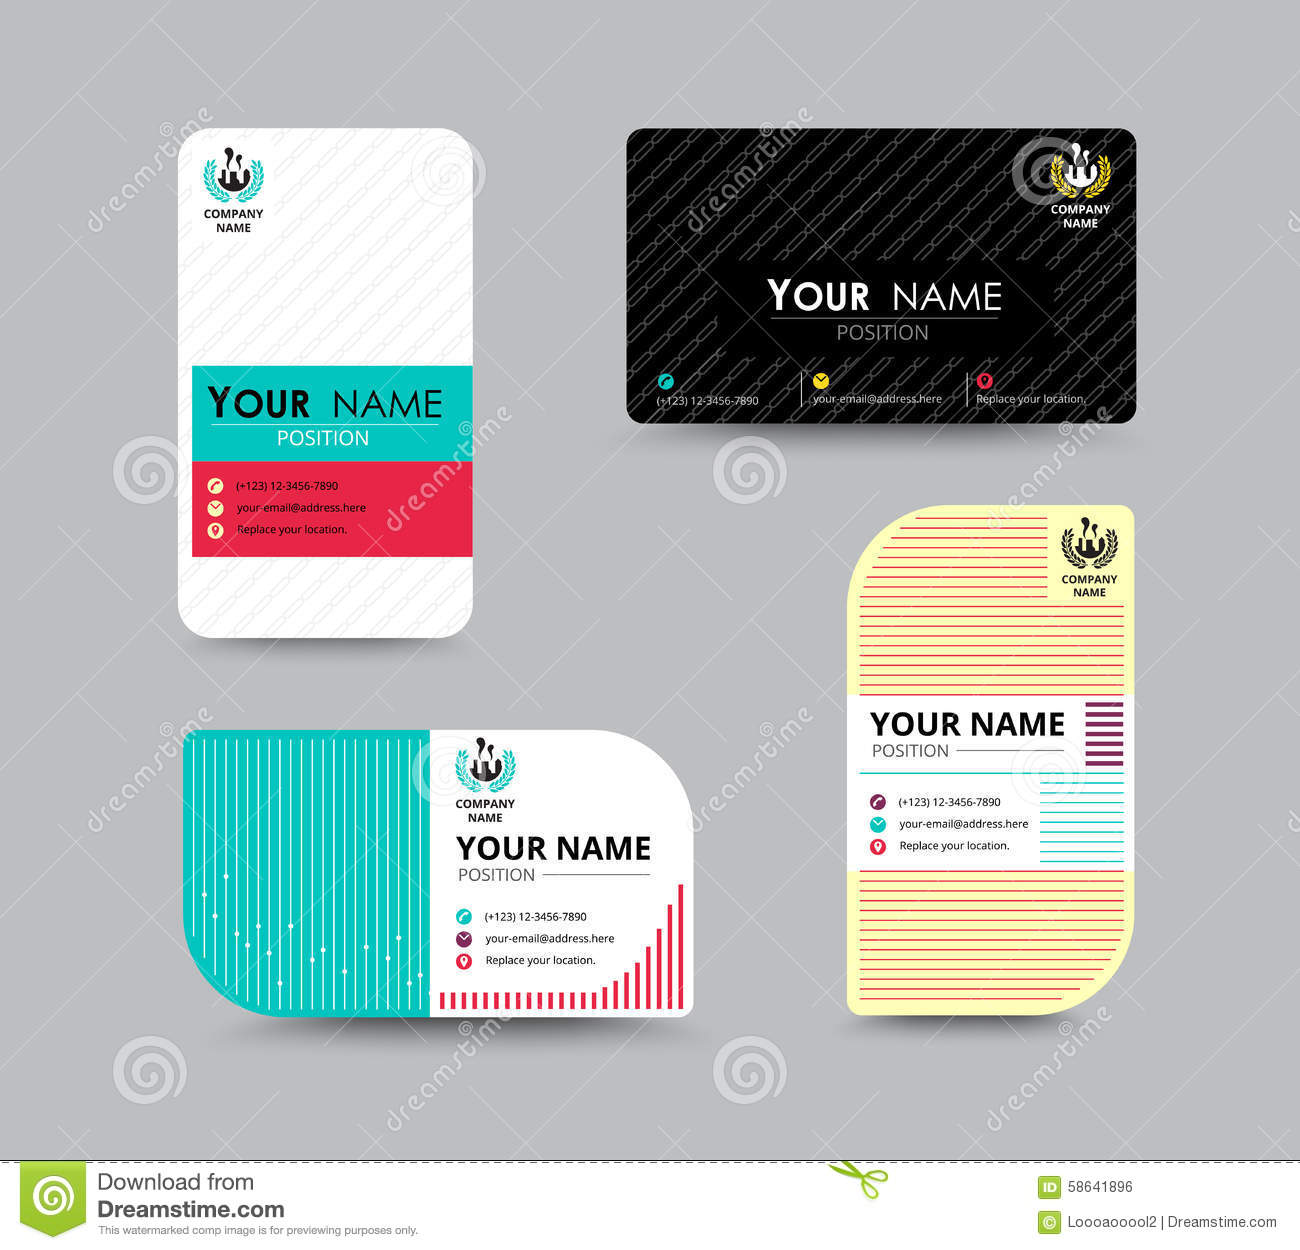 Business name card design for corporation card template vector business greeting card template design introduce card include sample text position vector illustration design wajeb Choice Image